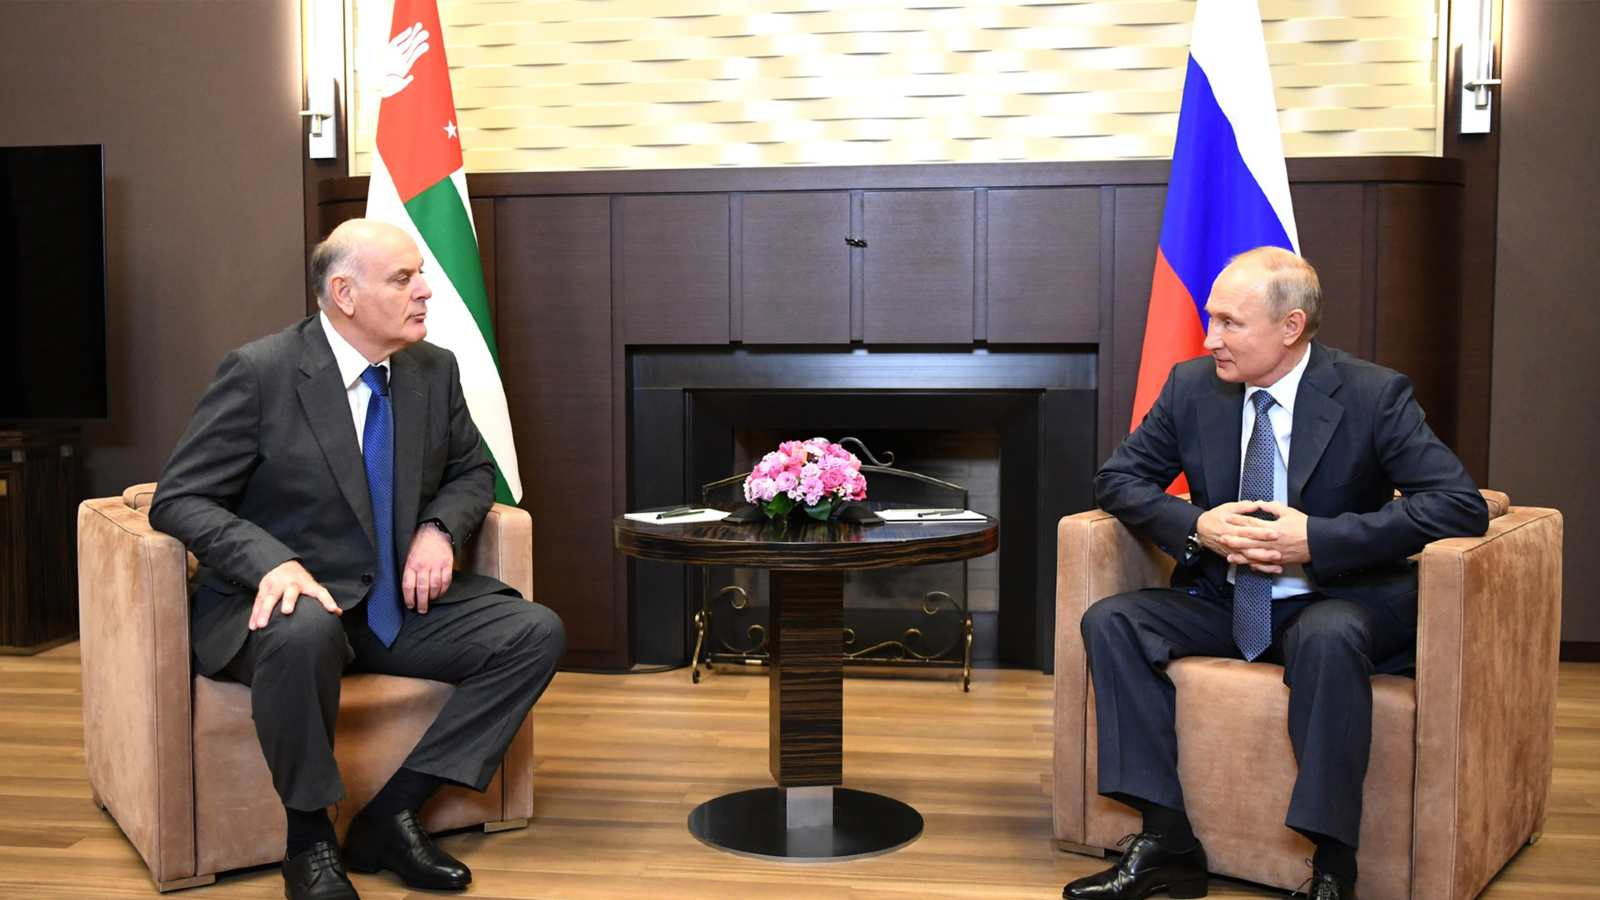 In Sochi, Vladimir Putin held talks with President of the Republic of Abkhazia Aslan Bzhania, who arrived in Russia on a working visit. November 12, 2020